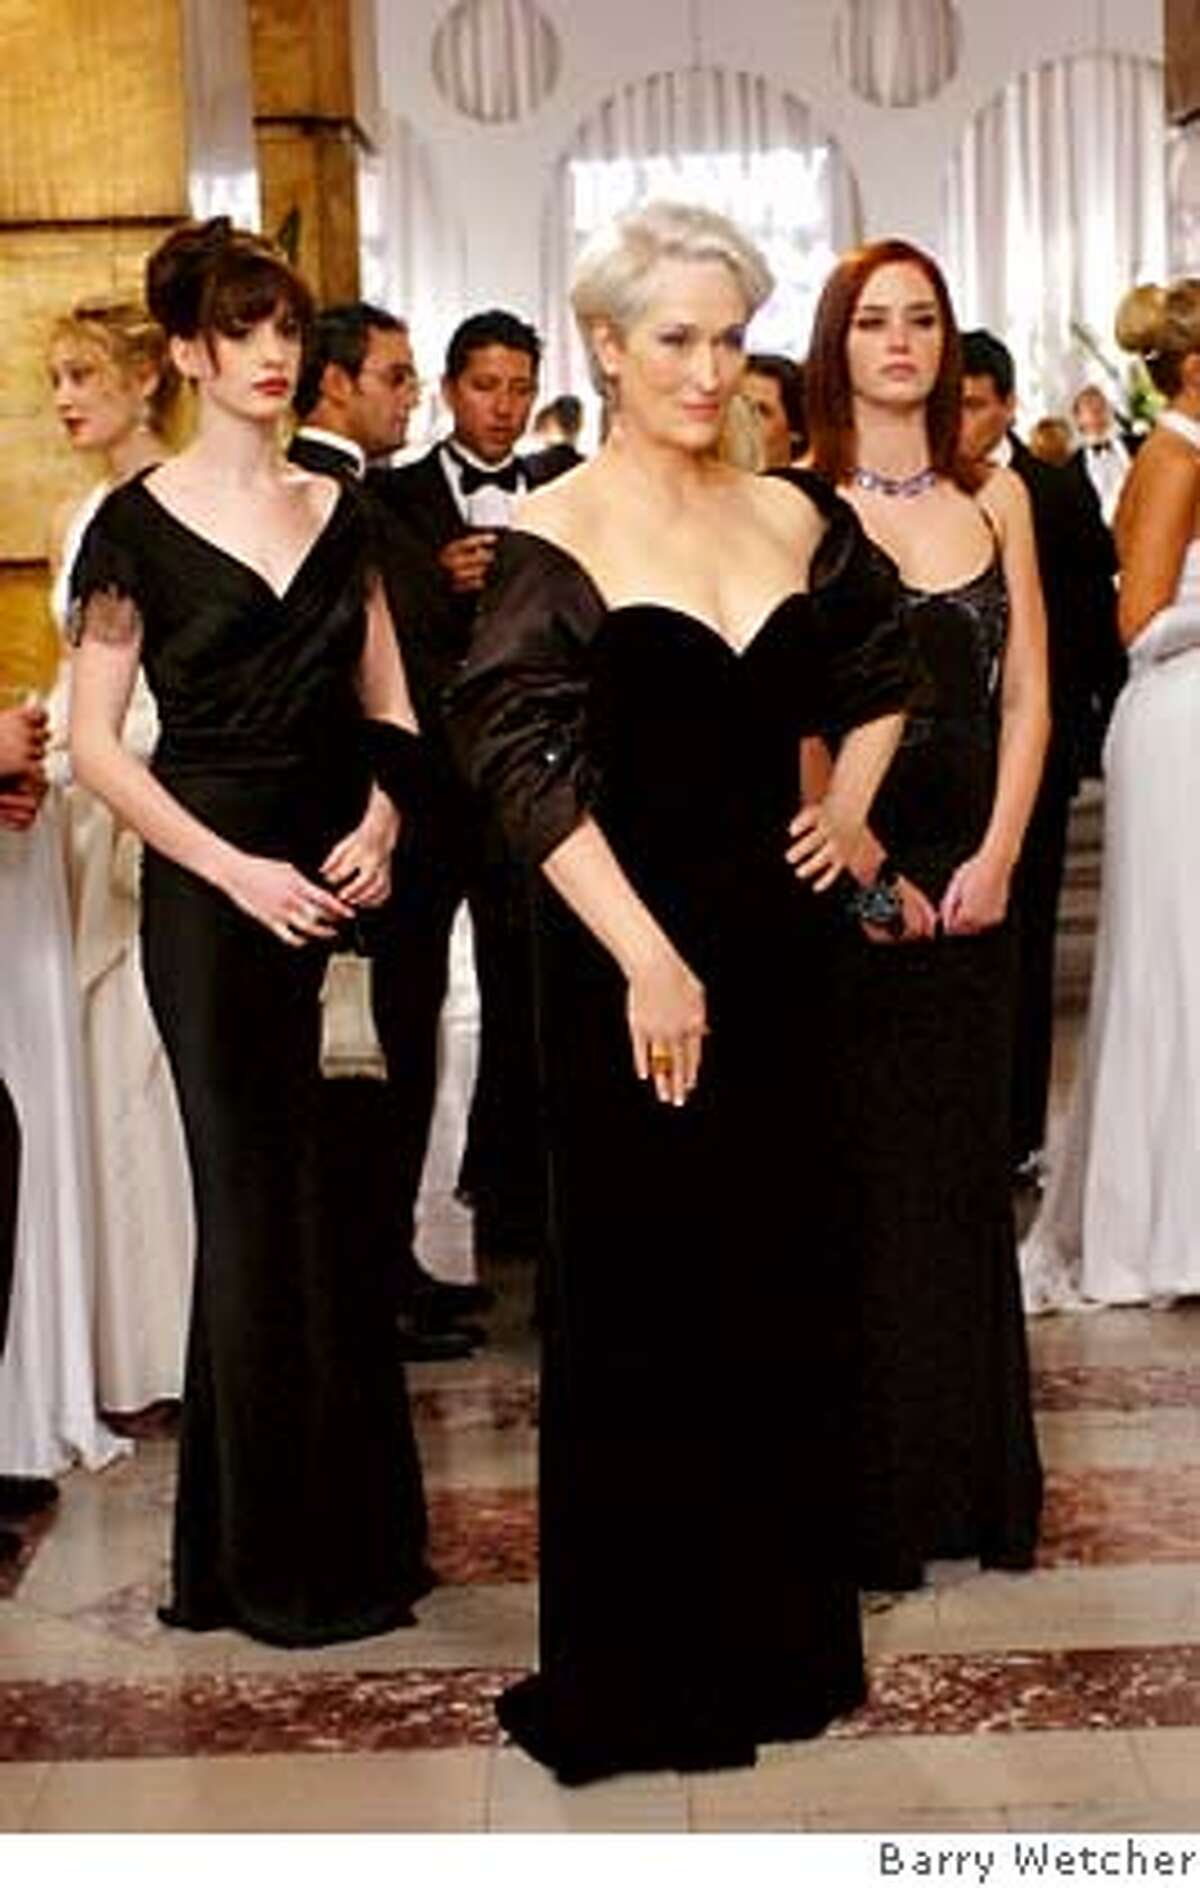 At an important party, fashion magazine editor Miranda Priestly (Meryl Streep) is flanked by her two assistants, Andy (Anne Hathaway, left) and Emily (Emily Blunt). PHOTOGRAPHS TO BE USED SOLELY FOR ADVERTISING, PROMOTION, PUBLICITY OR REVIEWS OF THIS SPECIFIC MOTION PICTURE AND TO REMAIN THE PROPERTY OF THE STUDIO. NOT FOR SALE OR REDISTRIBUTION. Ran on: 06-30-2006 Andy Sachs (Anne Hathaway) gets a rude awakening in The Devil Wears Prada, a dark look inside New Yorks fashion industry.